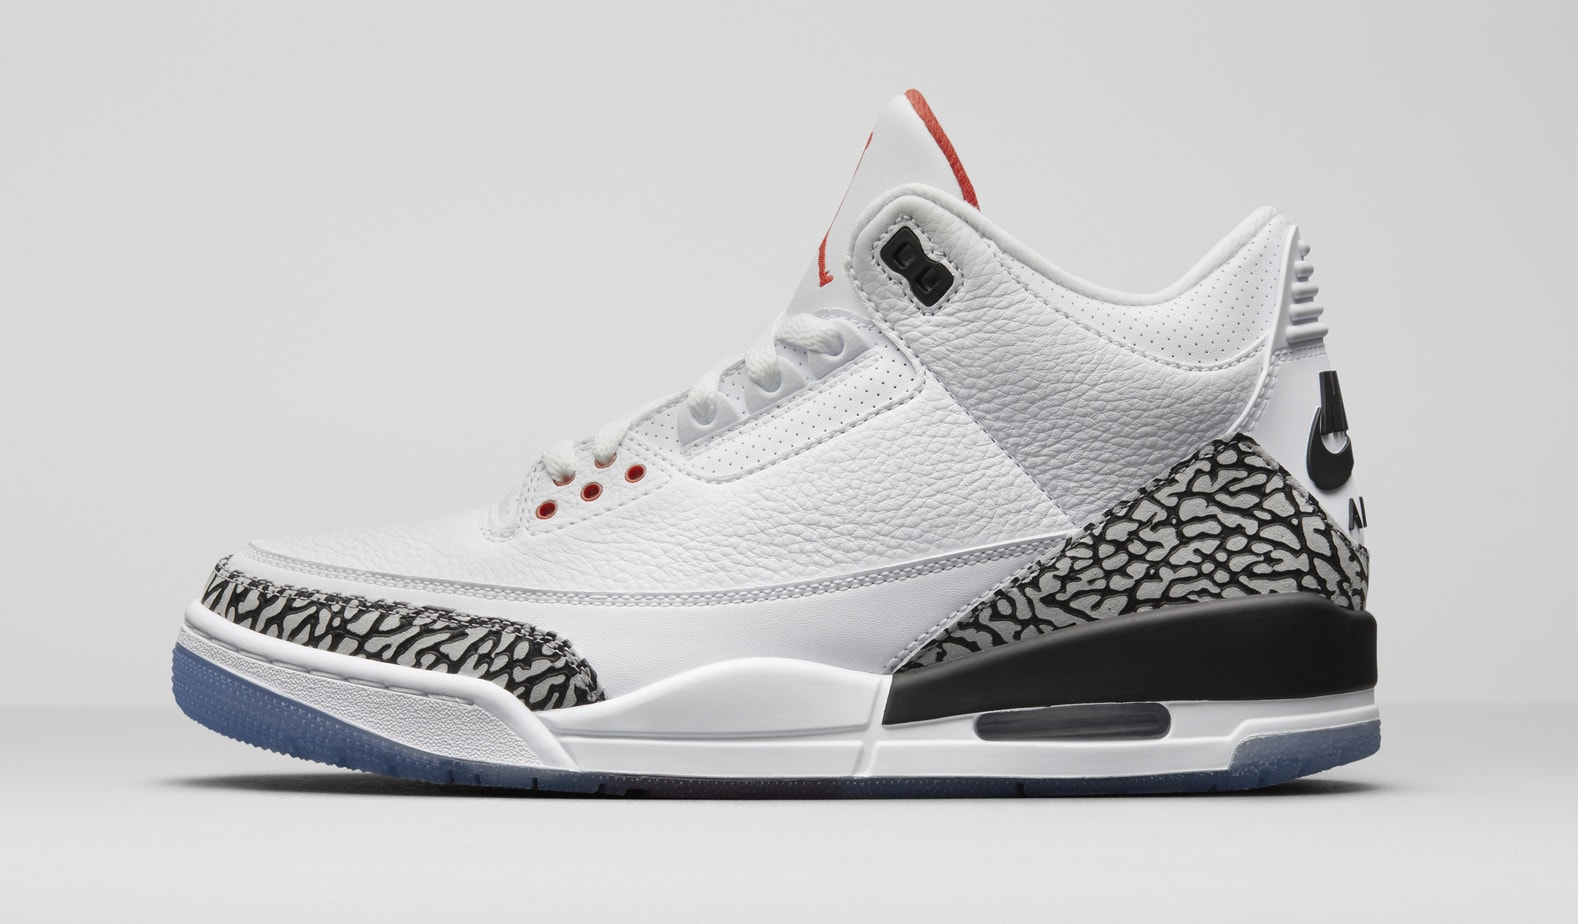 "68c8d4aac23f96 Stay tuned to JustFreshKicks for more Jordan 3 updates as the year  progresses. Air Jordan 3 NRG ""White Cement"" Release Date  February 14"